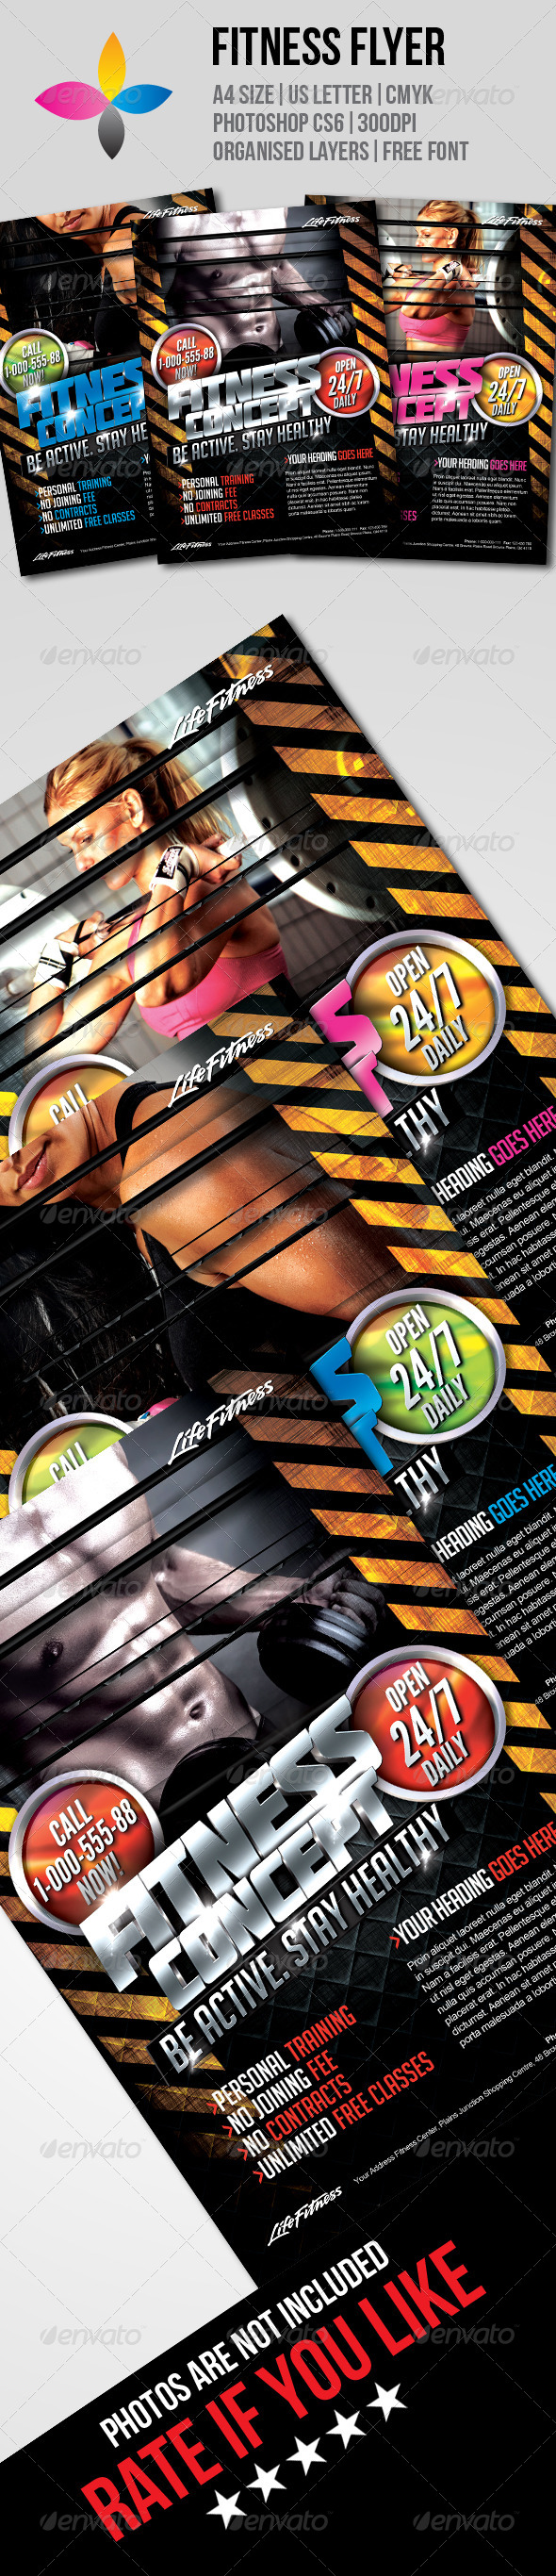 GraphicRiver Fitness Flyer 7785086